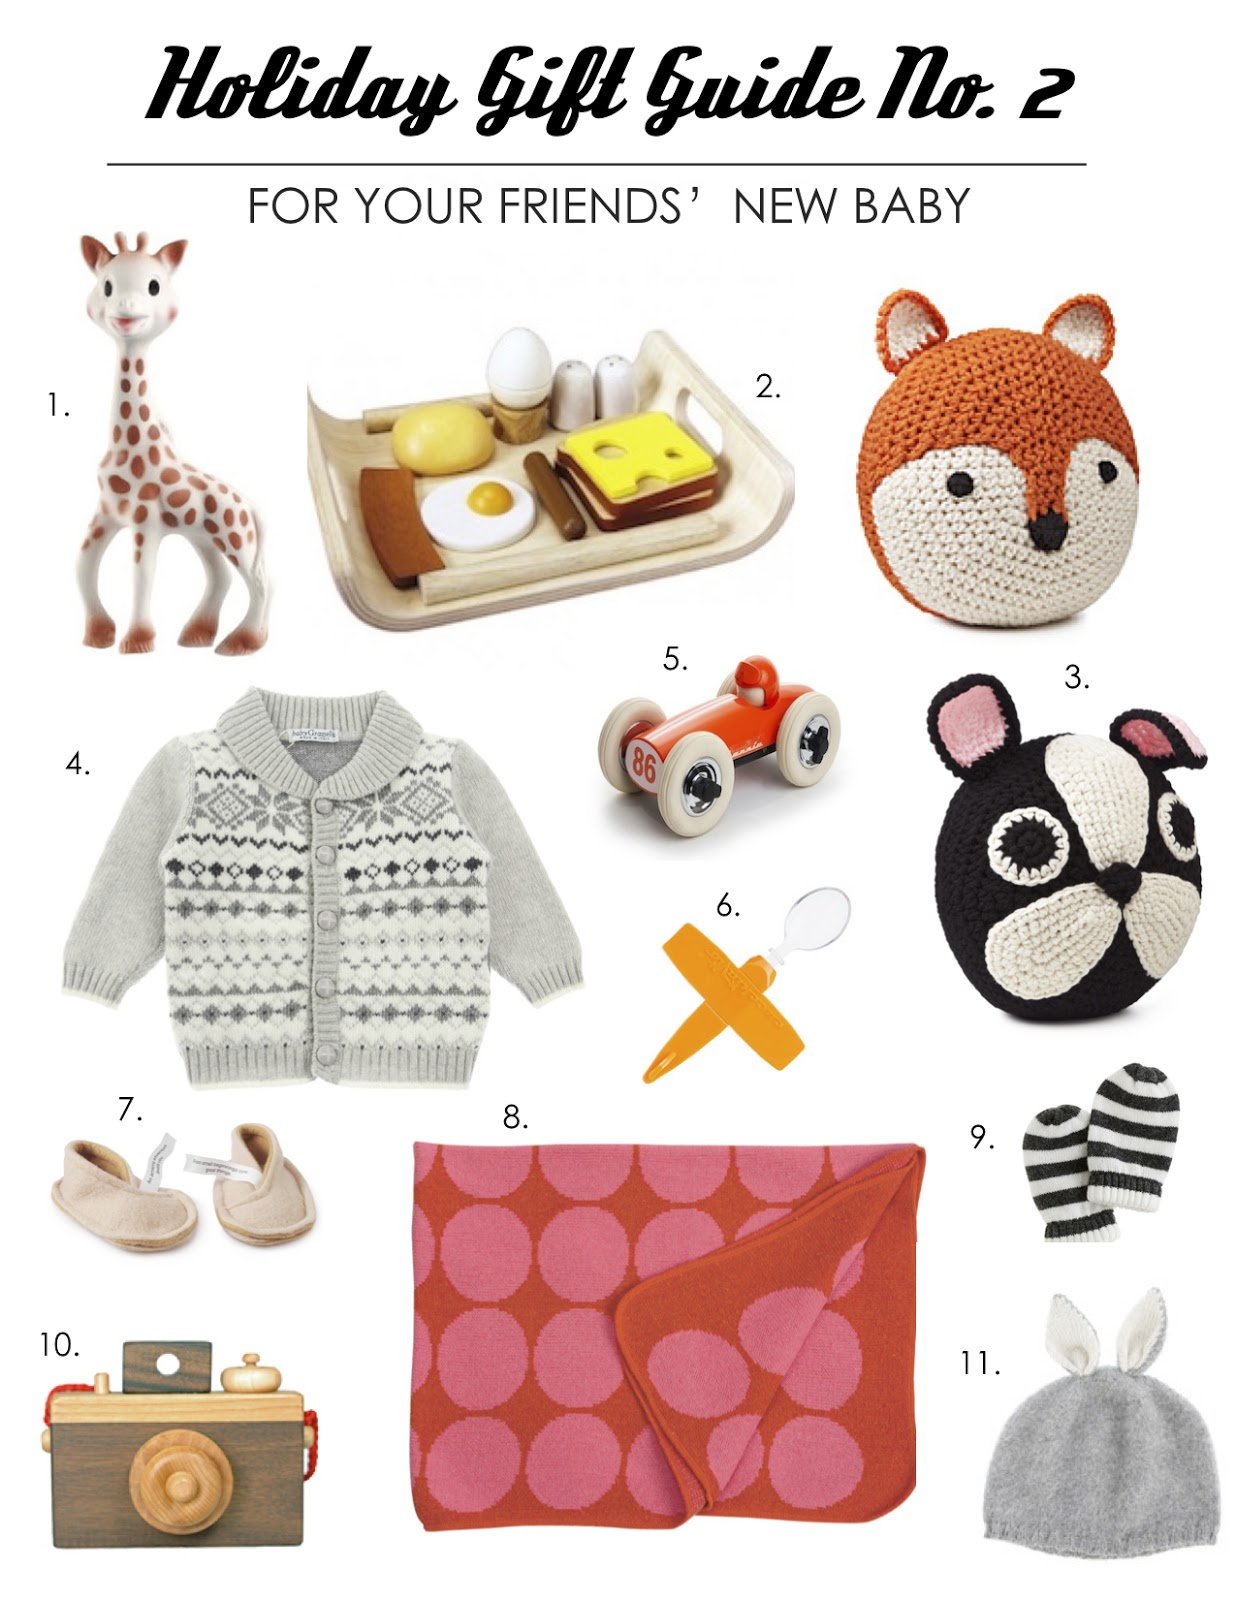 Baby Gifts For The Parents : Gift guide the best gifts for new parents their